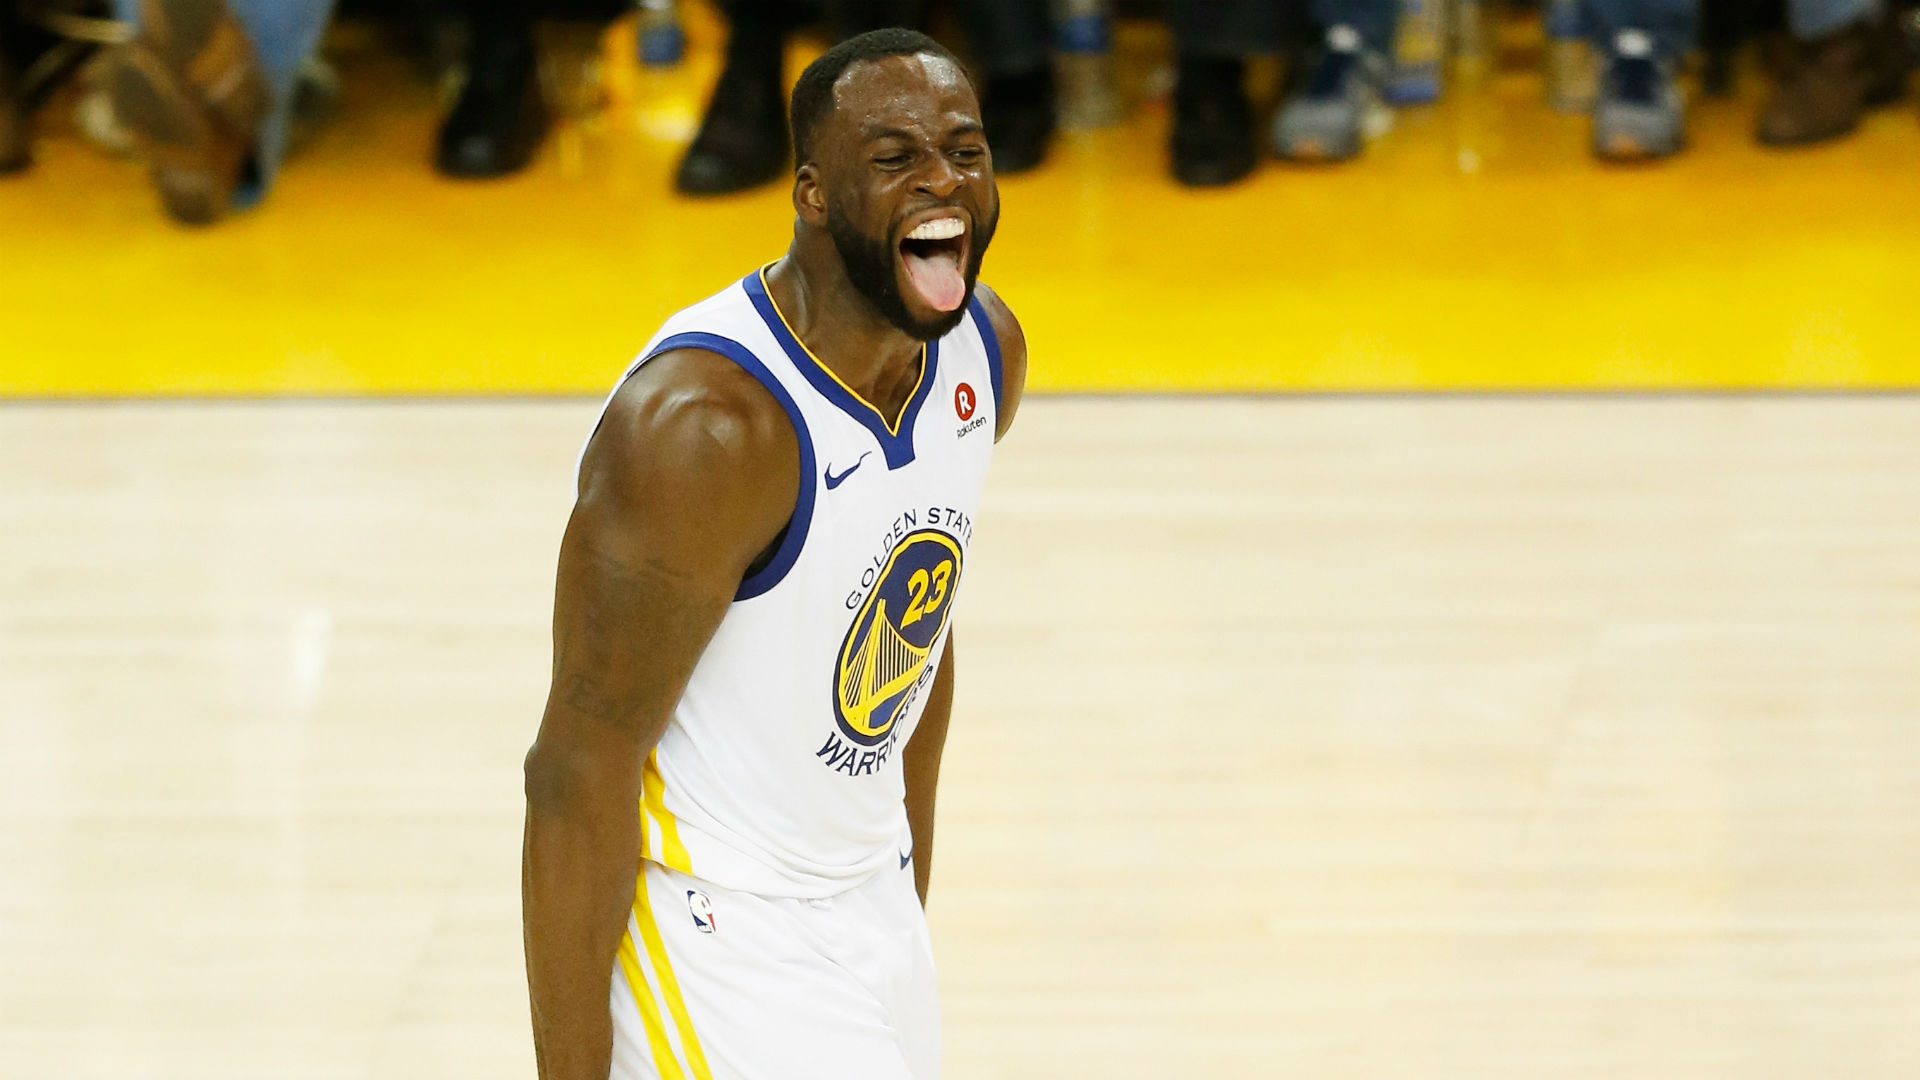 Draymond Green's on-court production, antics leave early imprint on NBA Finals